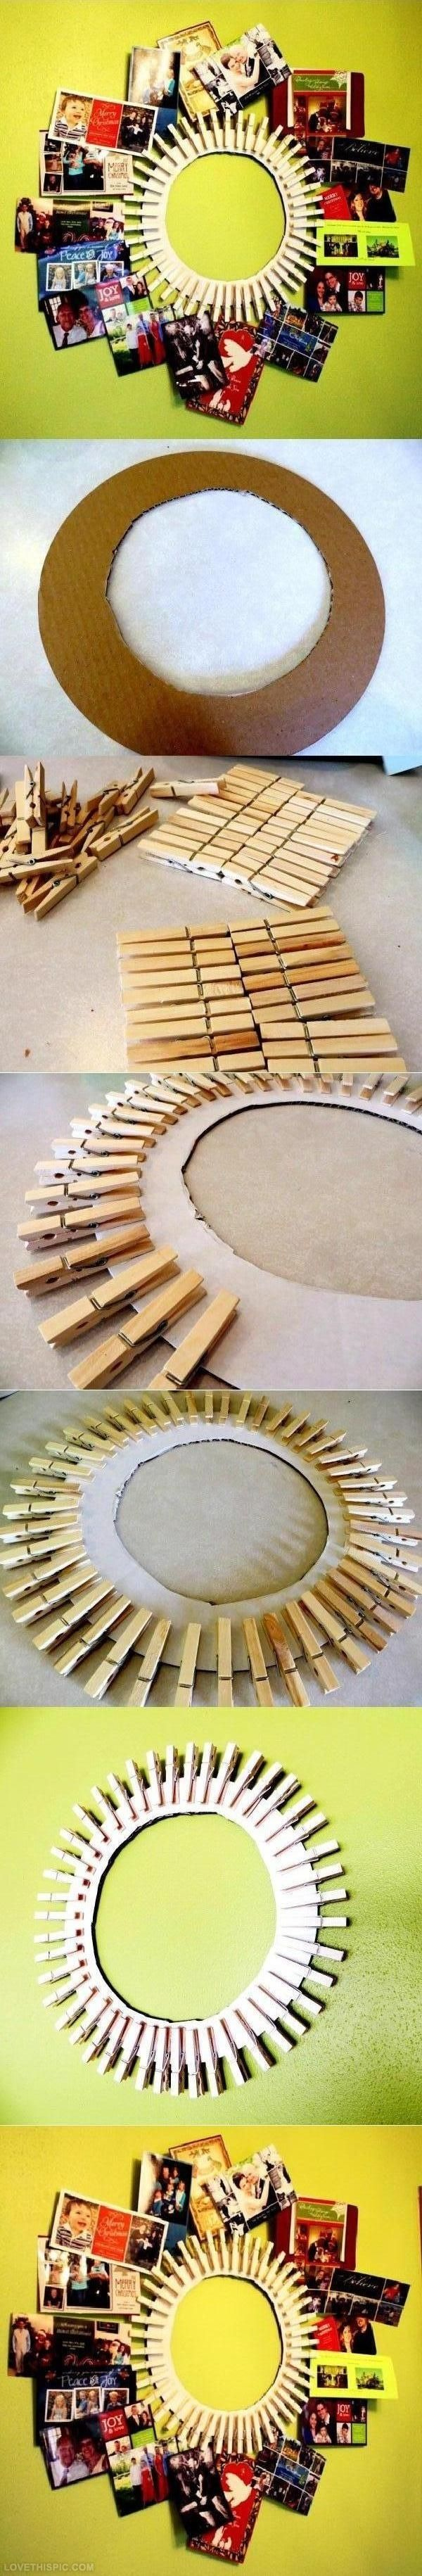 DIY Clothespin Picture Frame great for Christmas Card display